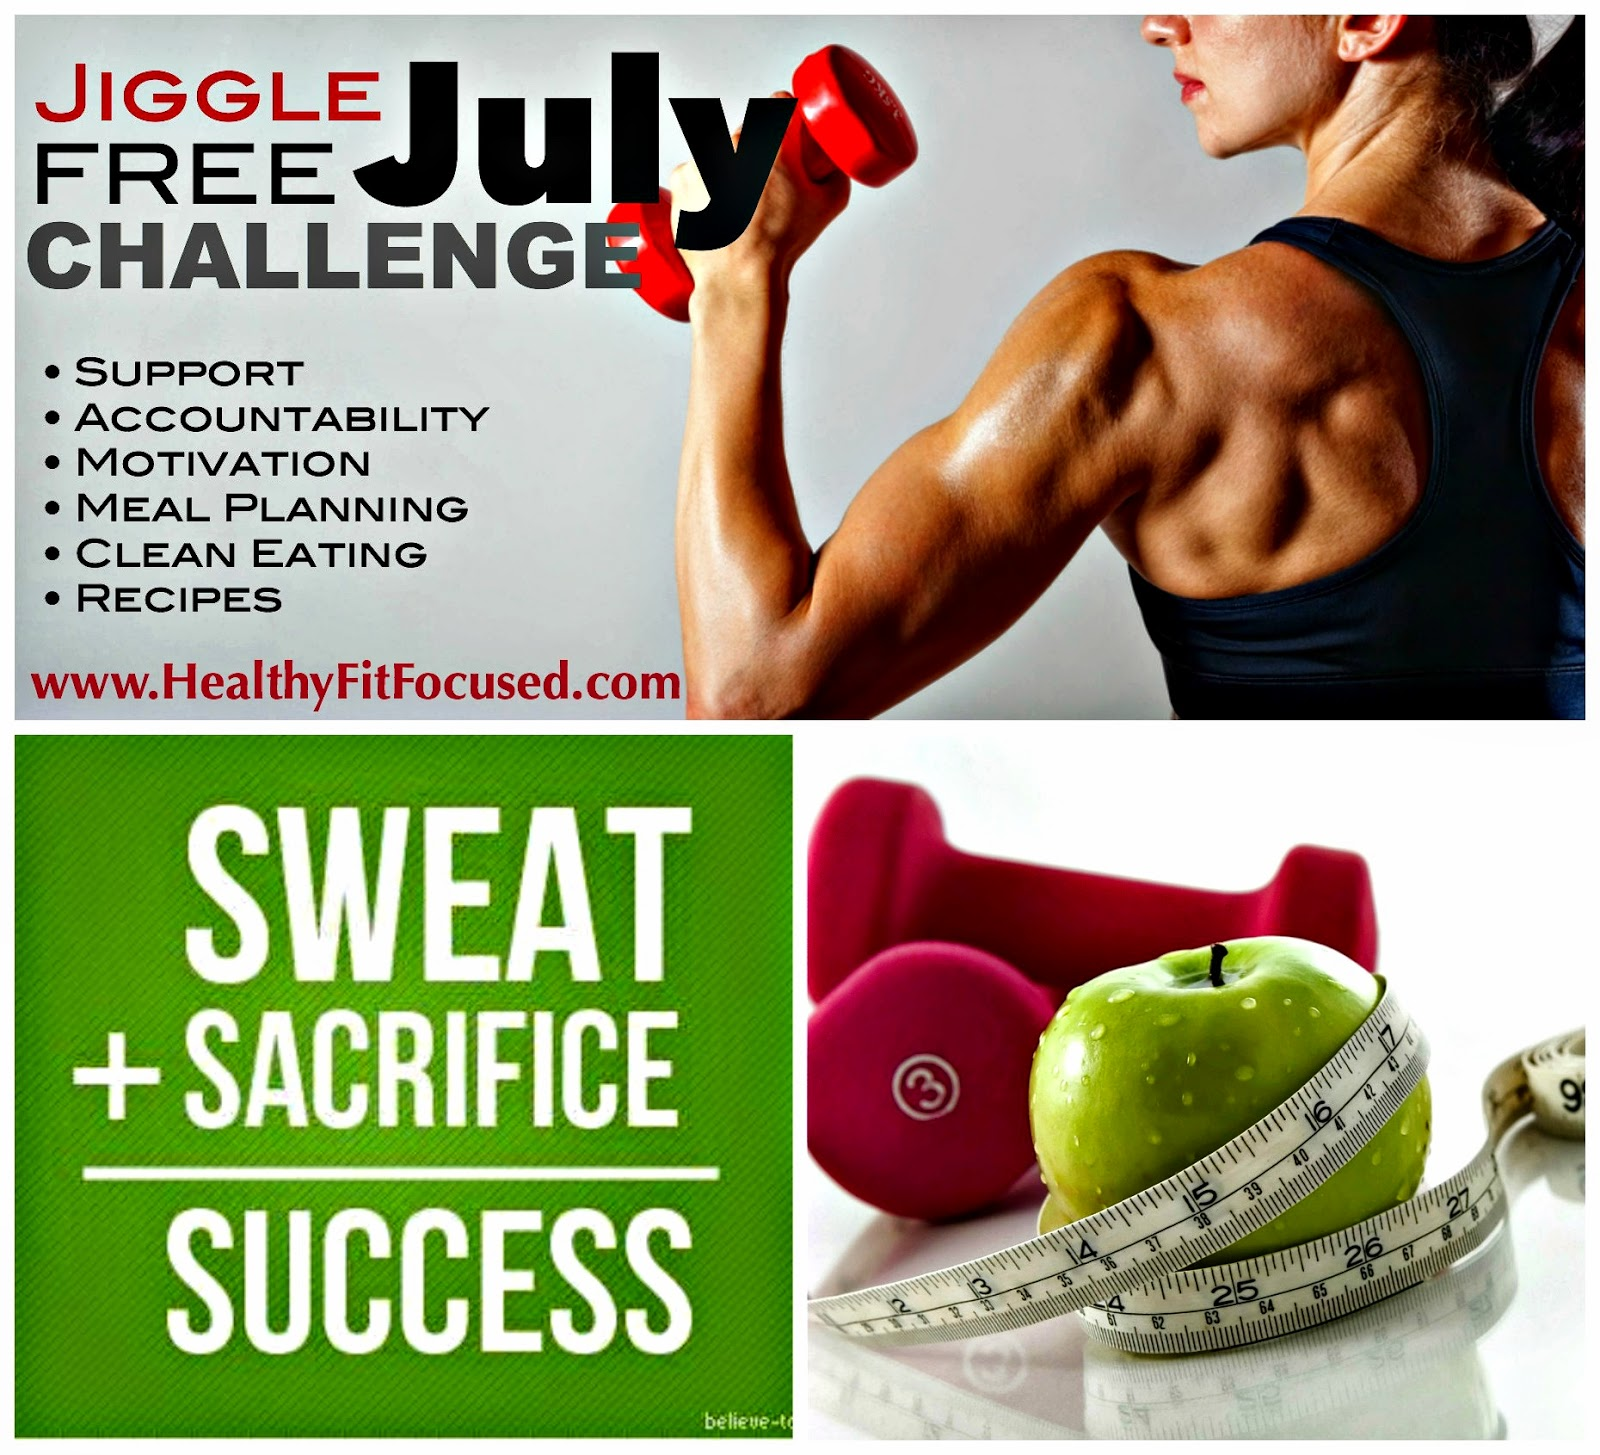 Jiggle Free July Challenge, Lose Weight, Support, Accountability, Summer Weight loss, 21 Day Fix, Piyo